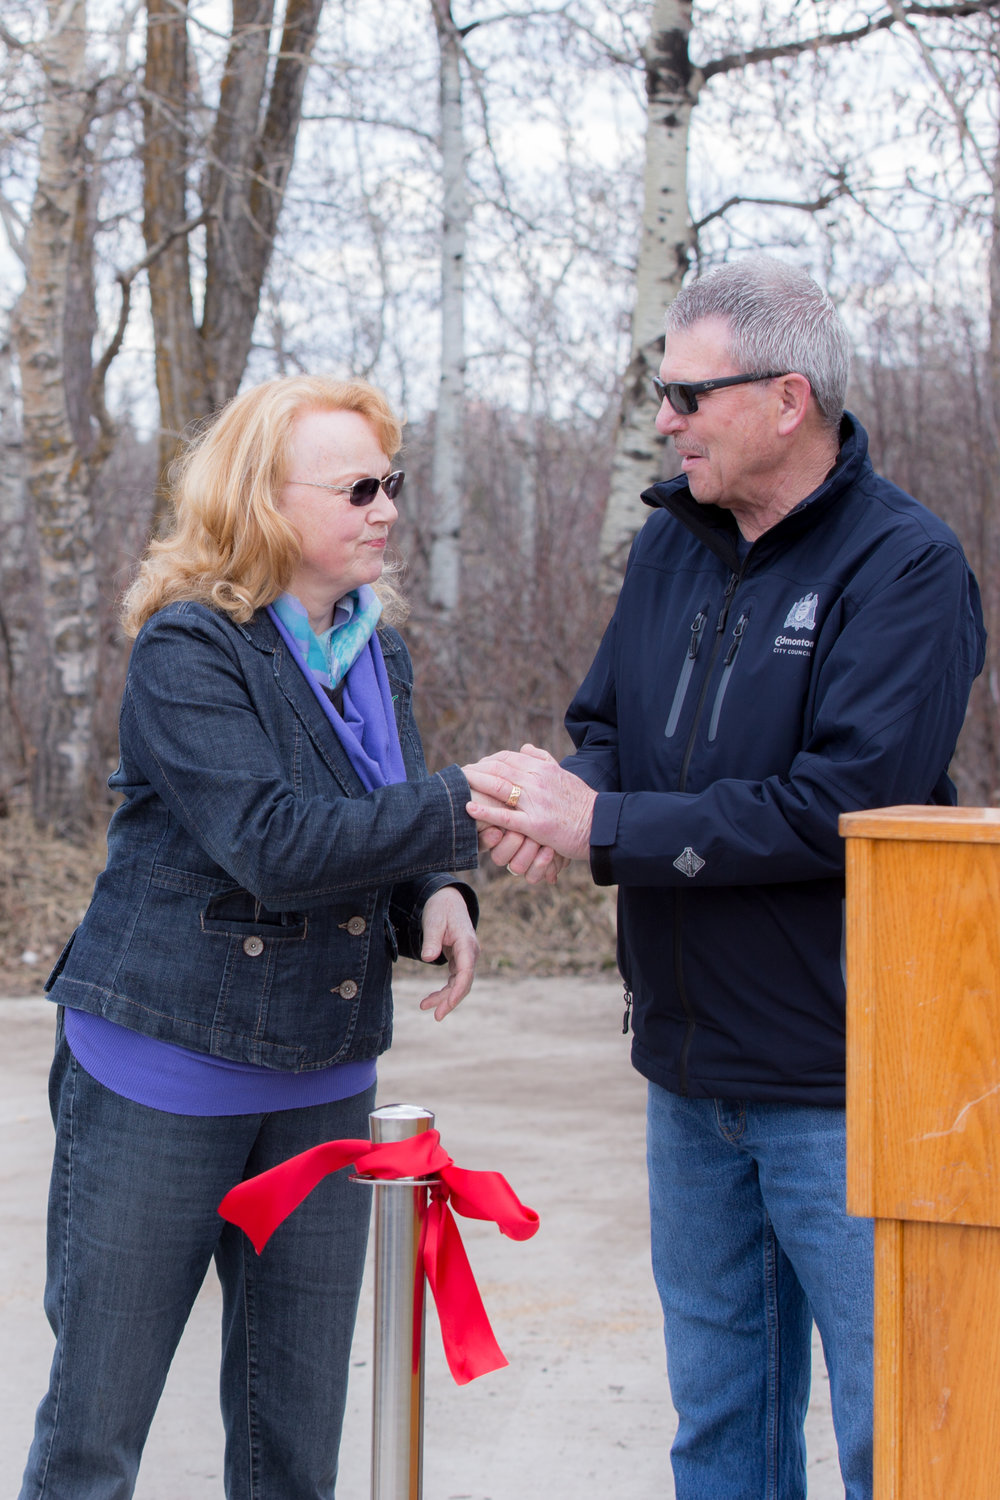 Councillor Anderson and Pam Wight, April 29,2017.